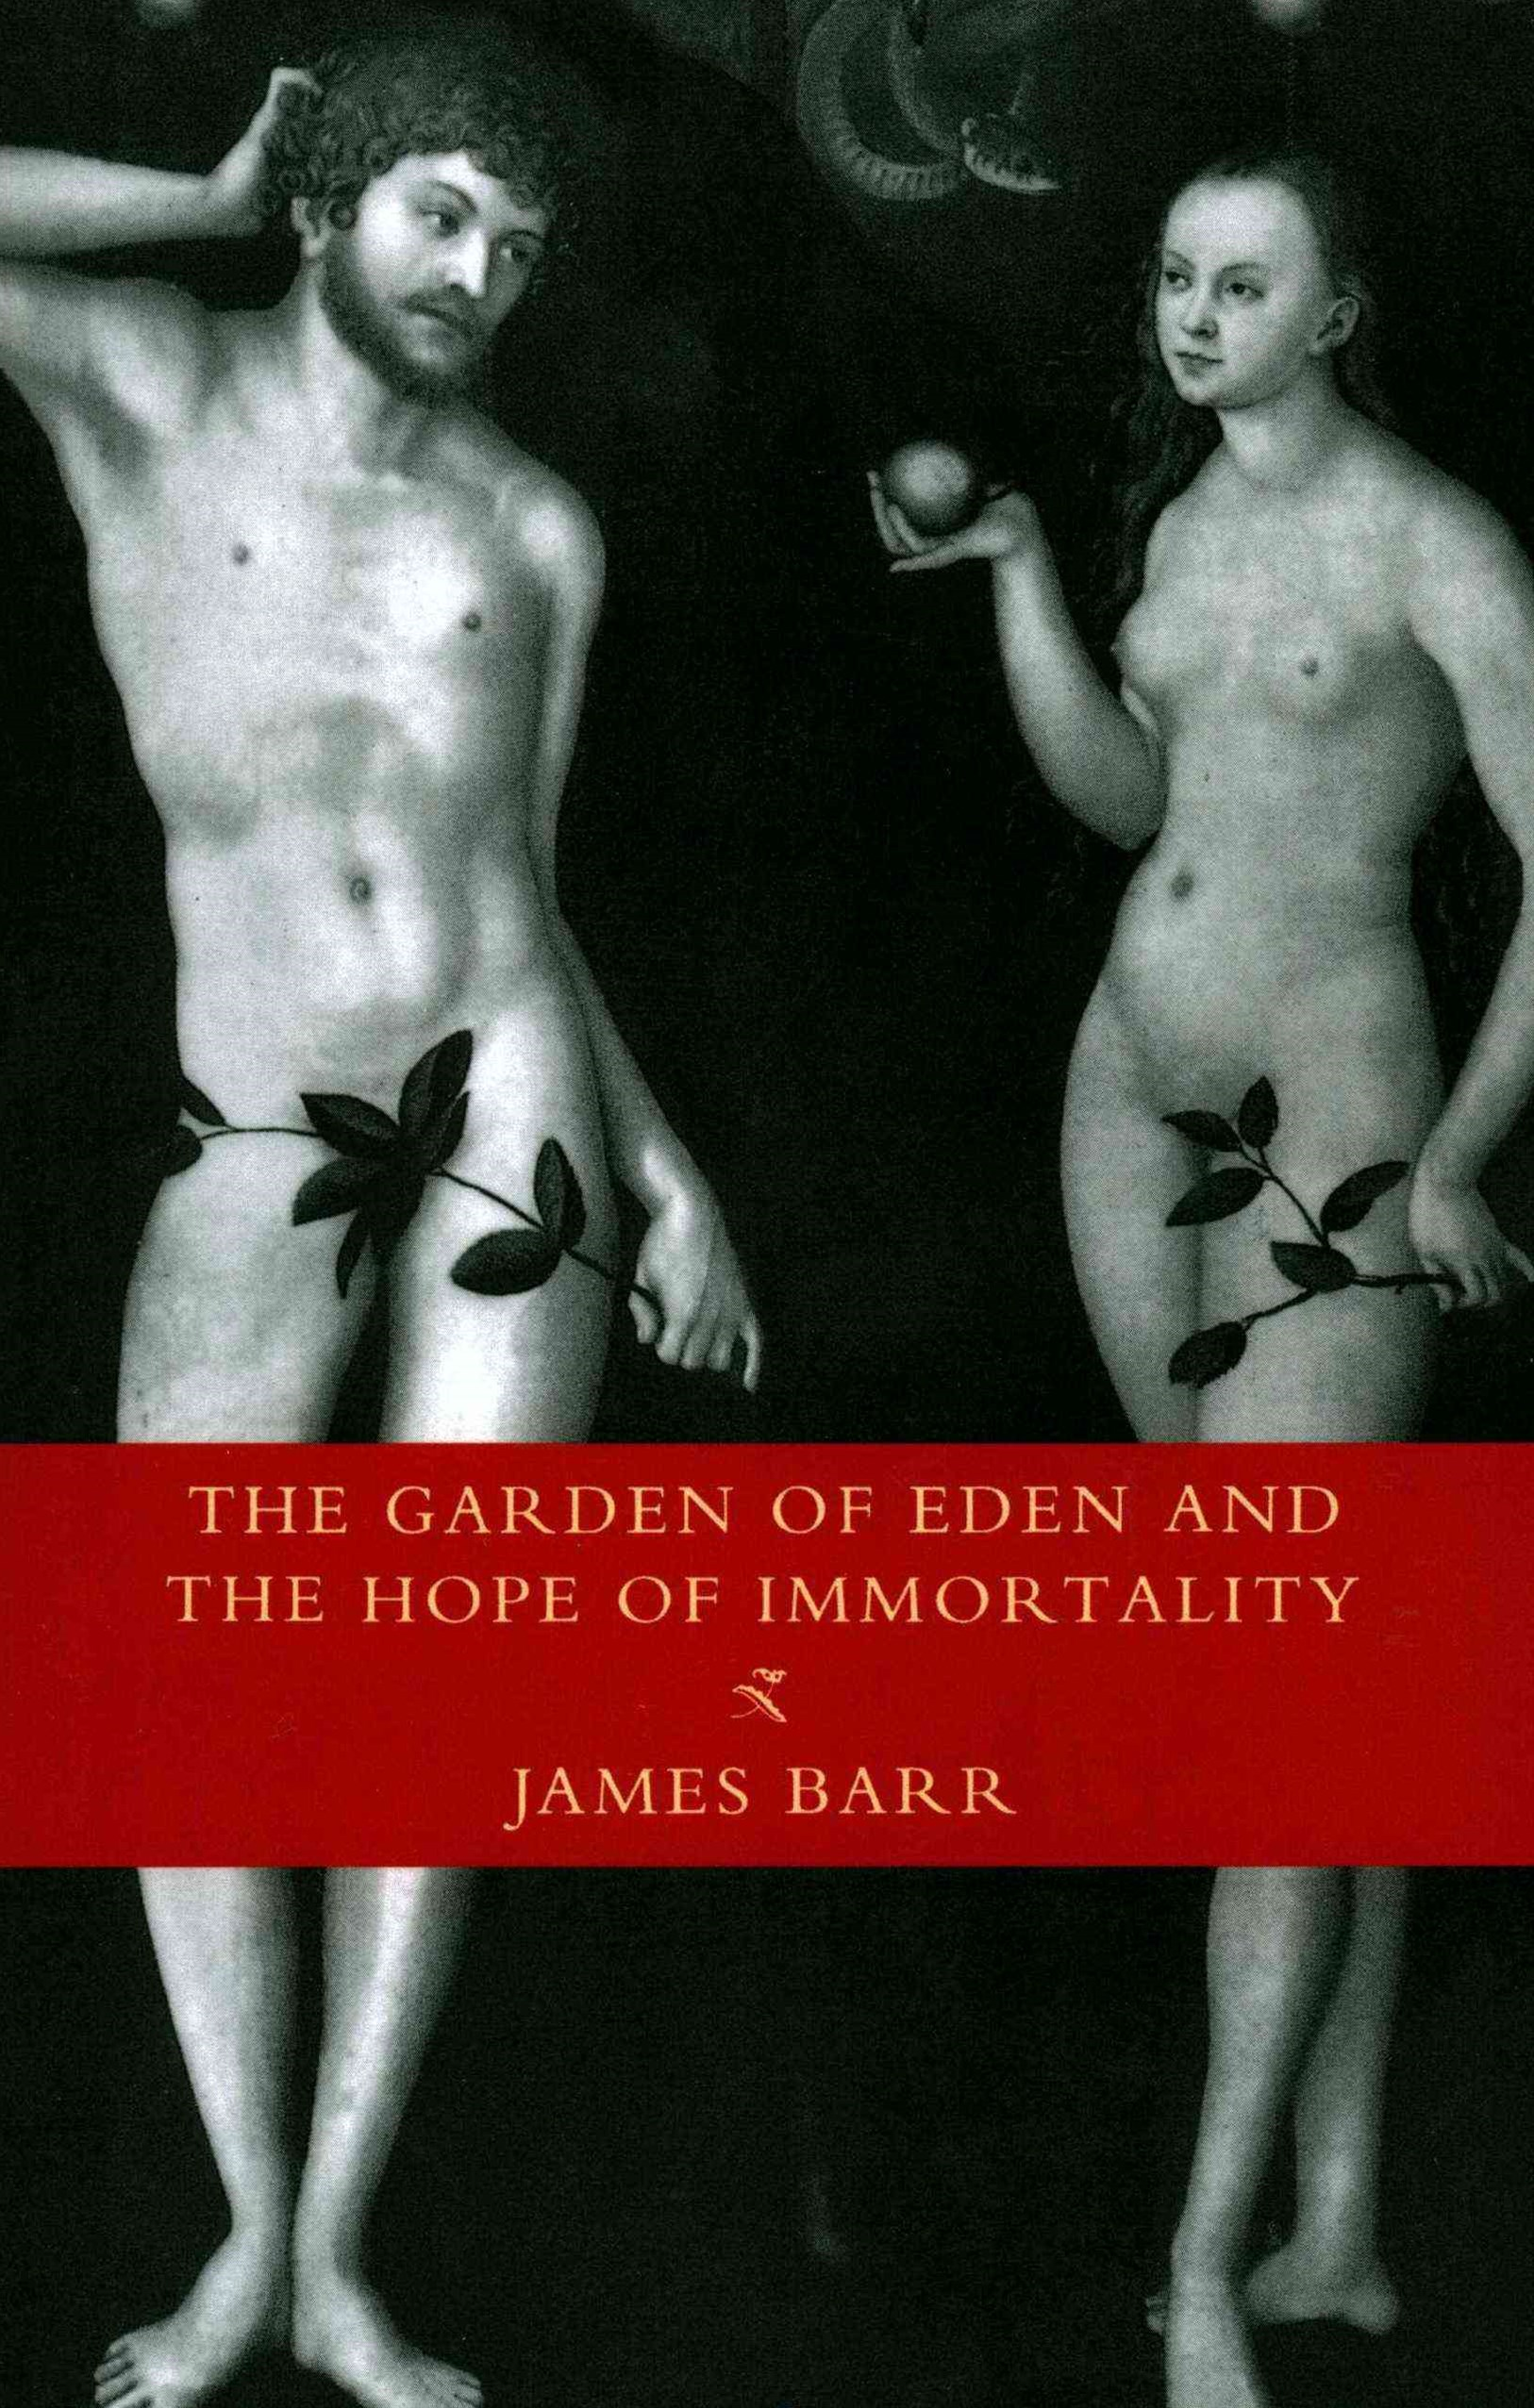 Garden of Eden and the Hope of Immortality